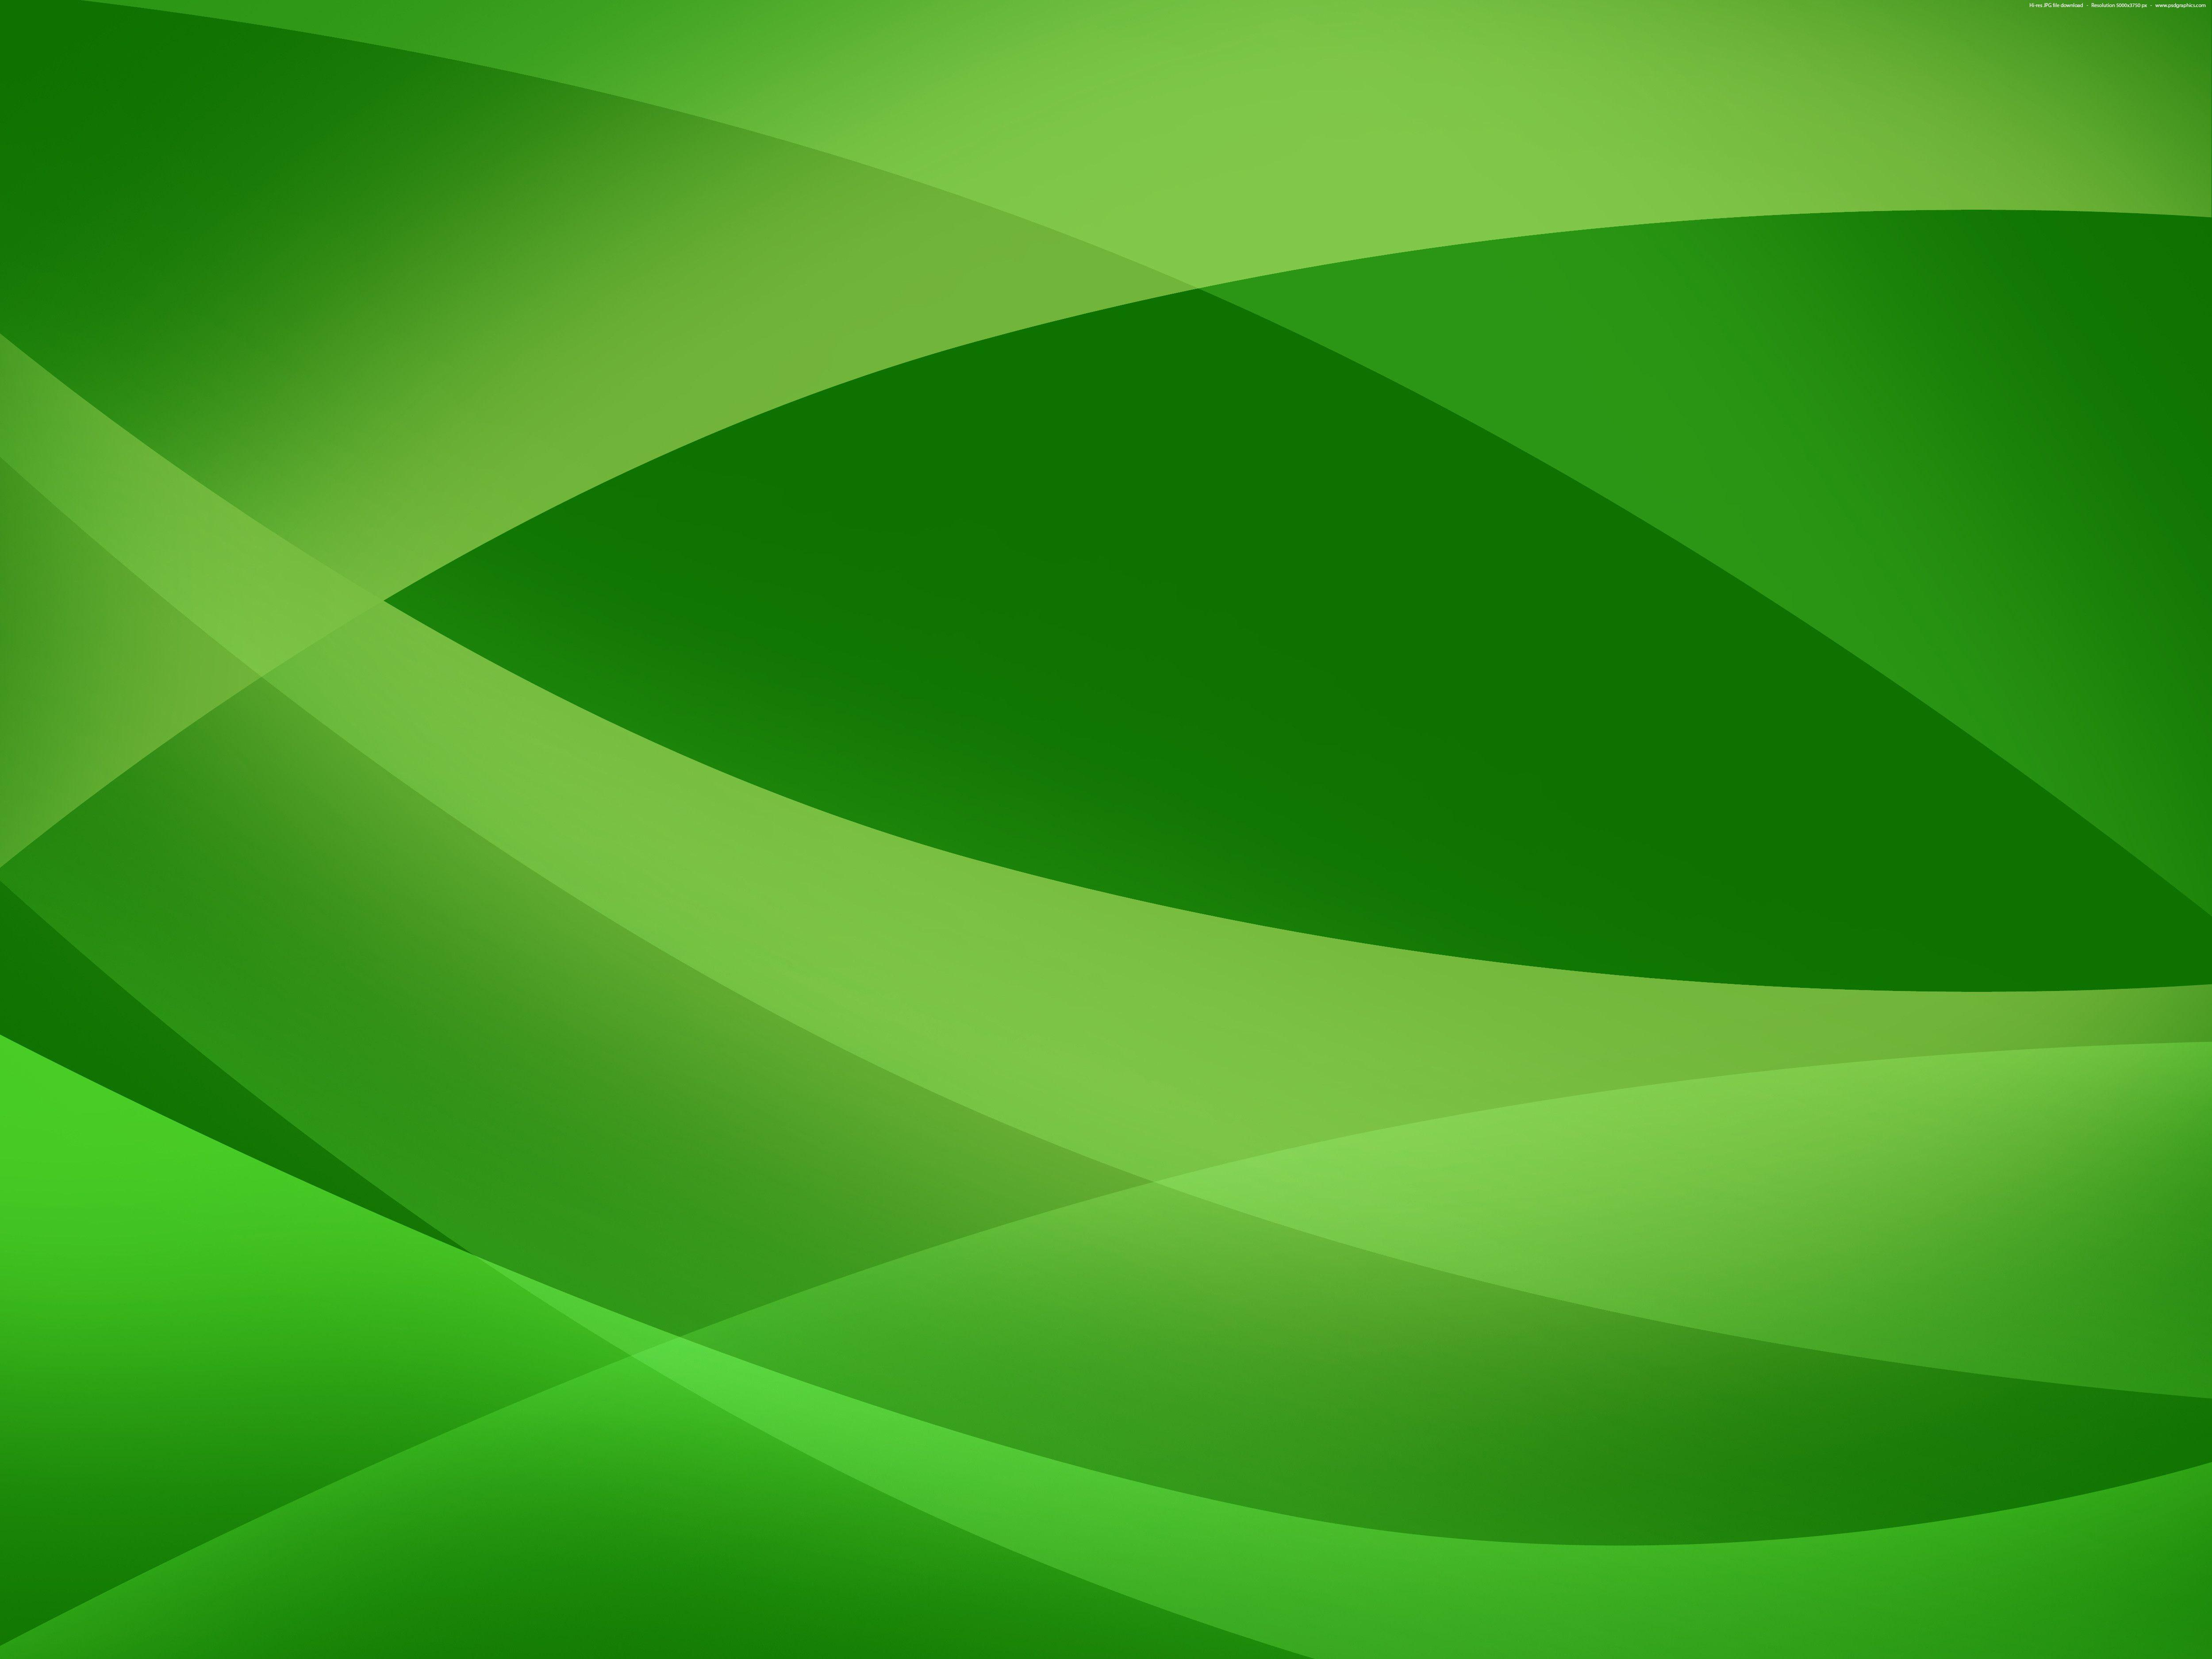 Abstract layout designs, blue and green backgrounds